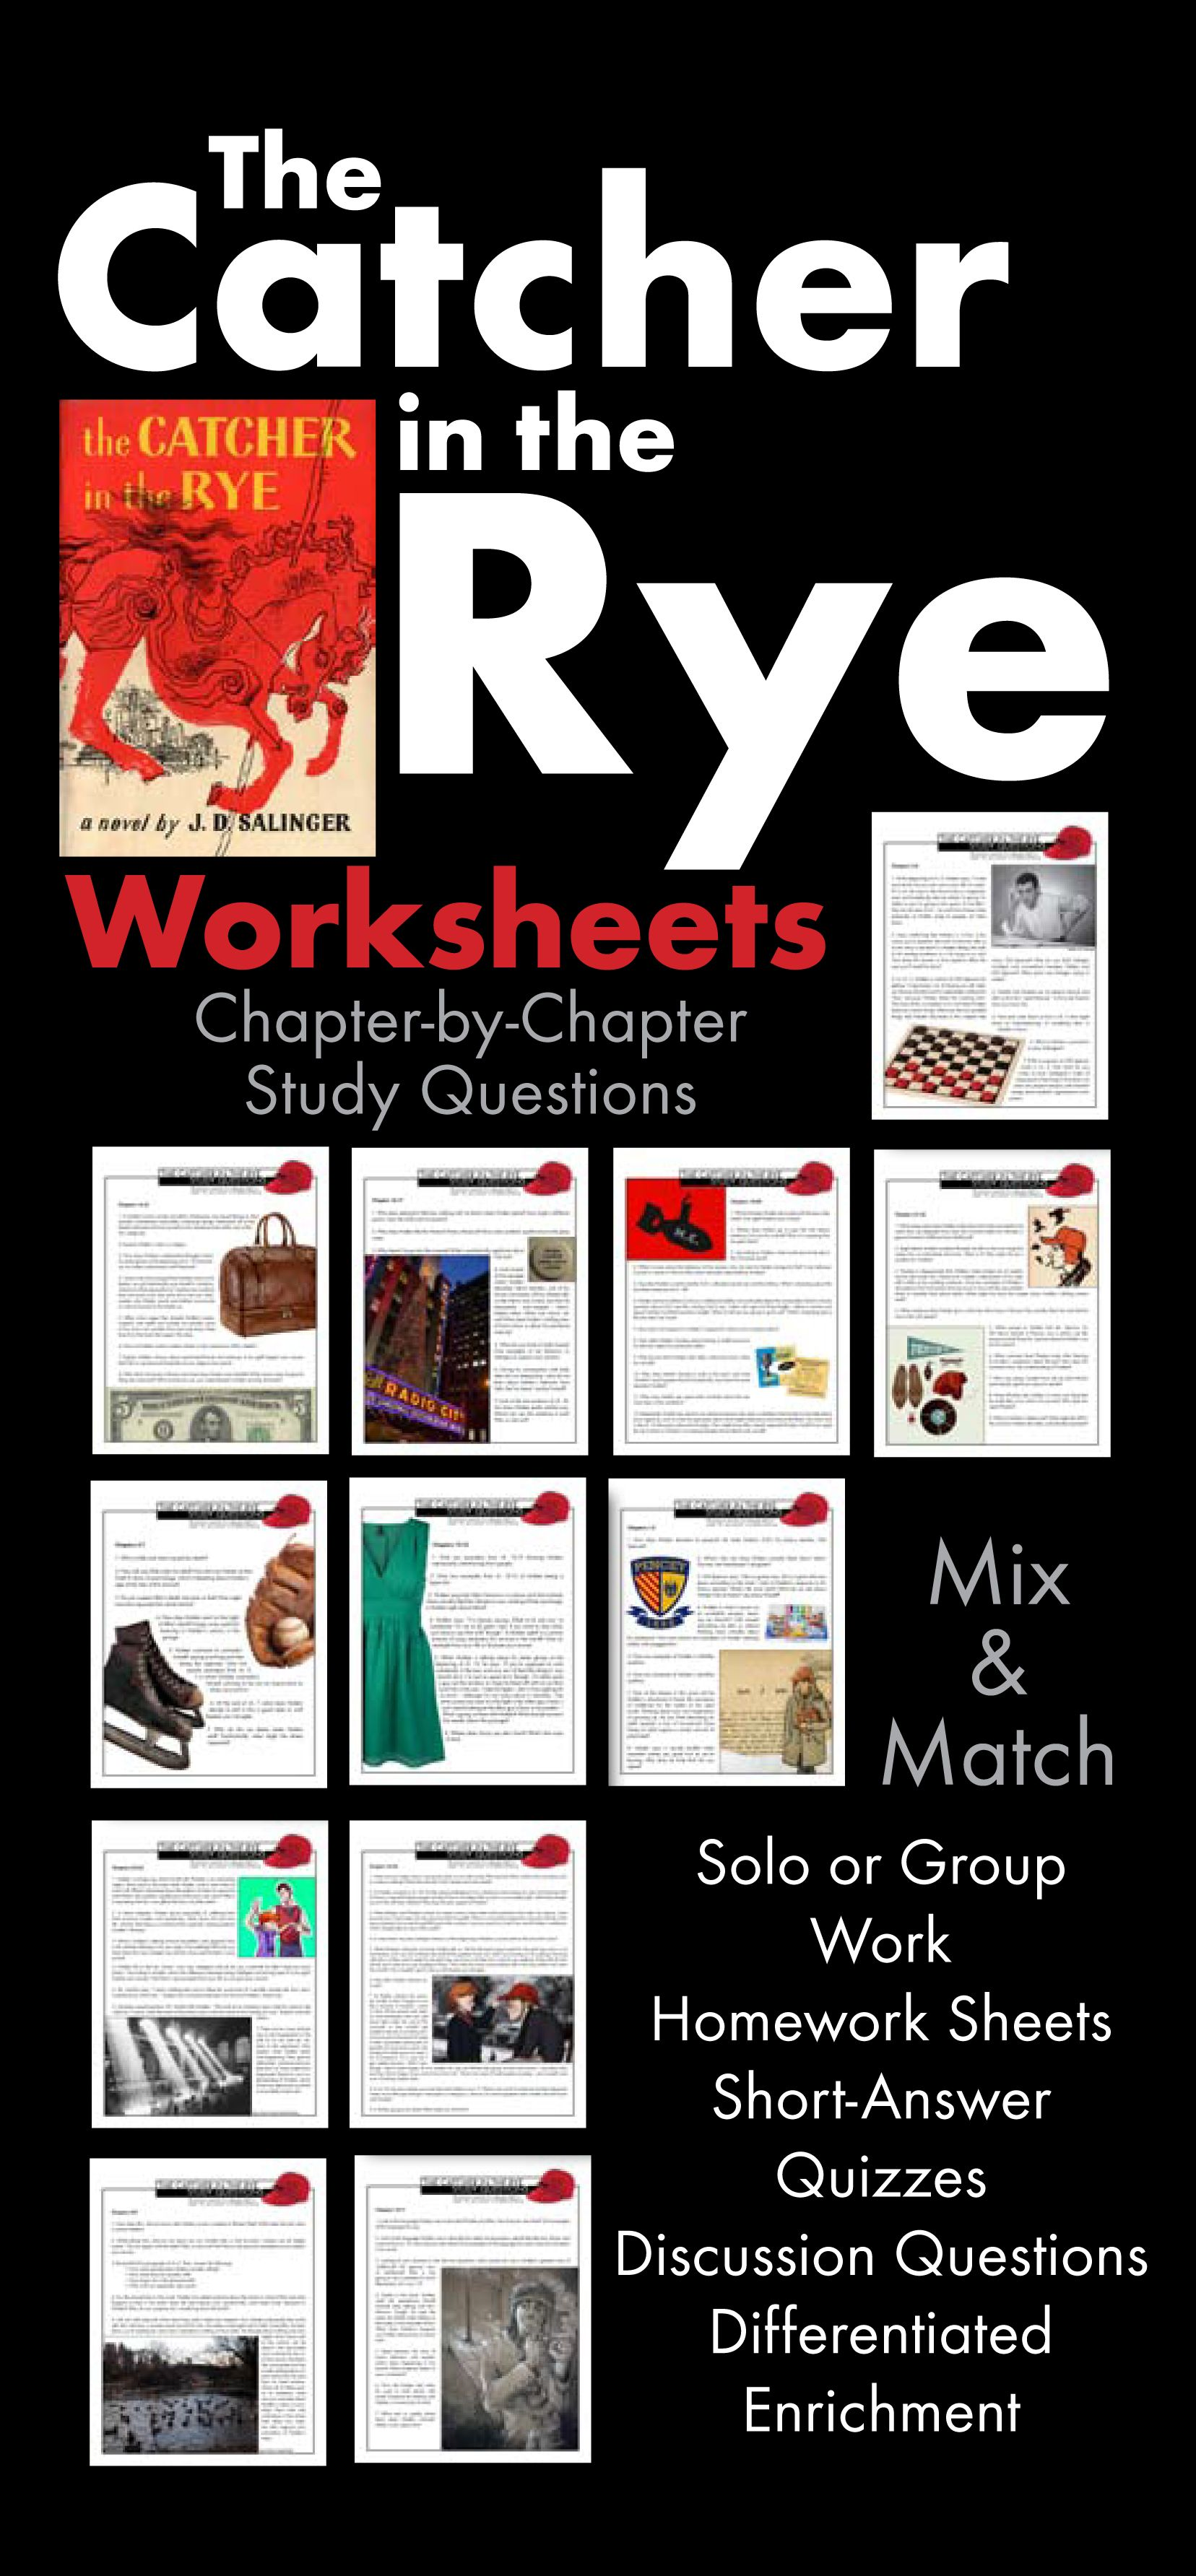 worksheet The Catcher In The Rye Worksheets catcher in the rye worksheets use as quizzes discussion hw themes essays critical major bookmark this reflect the